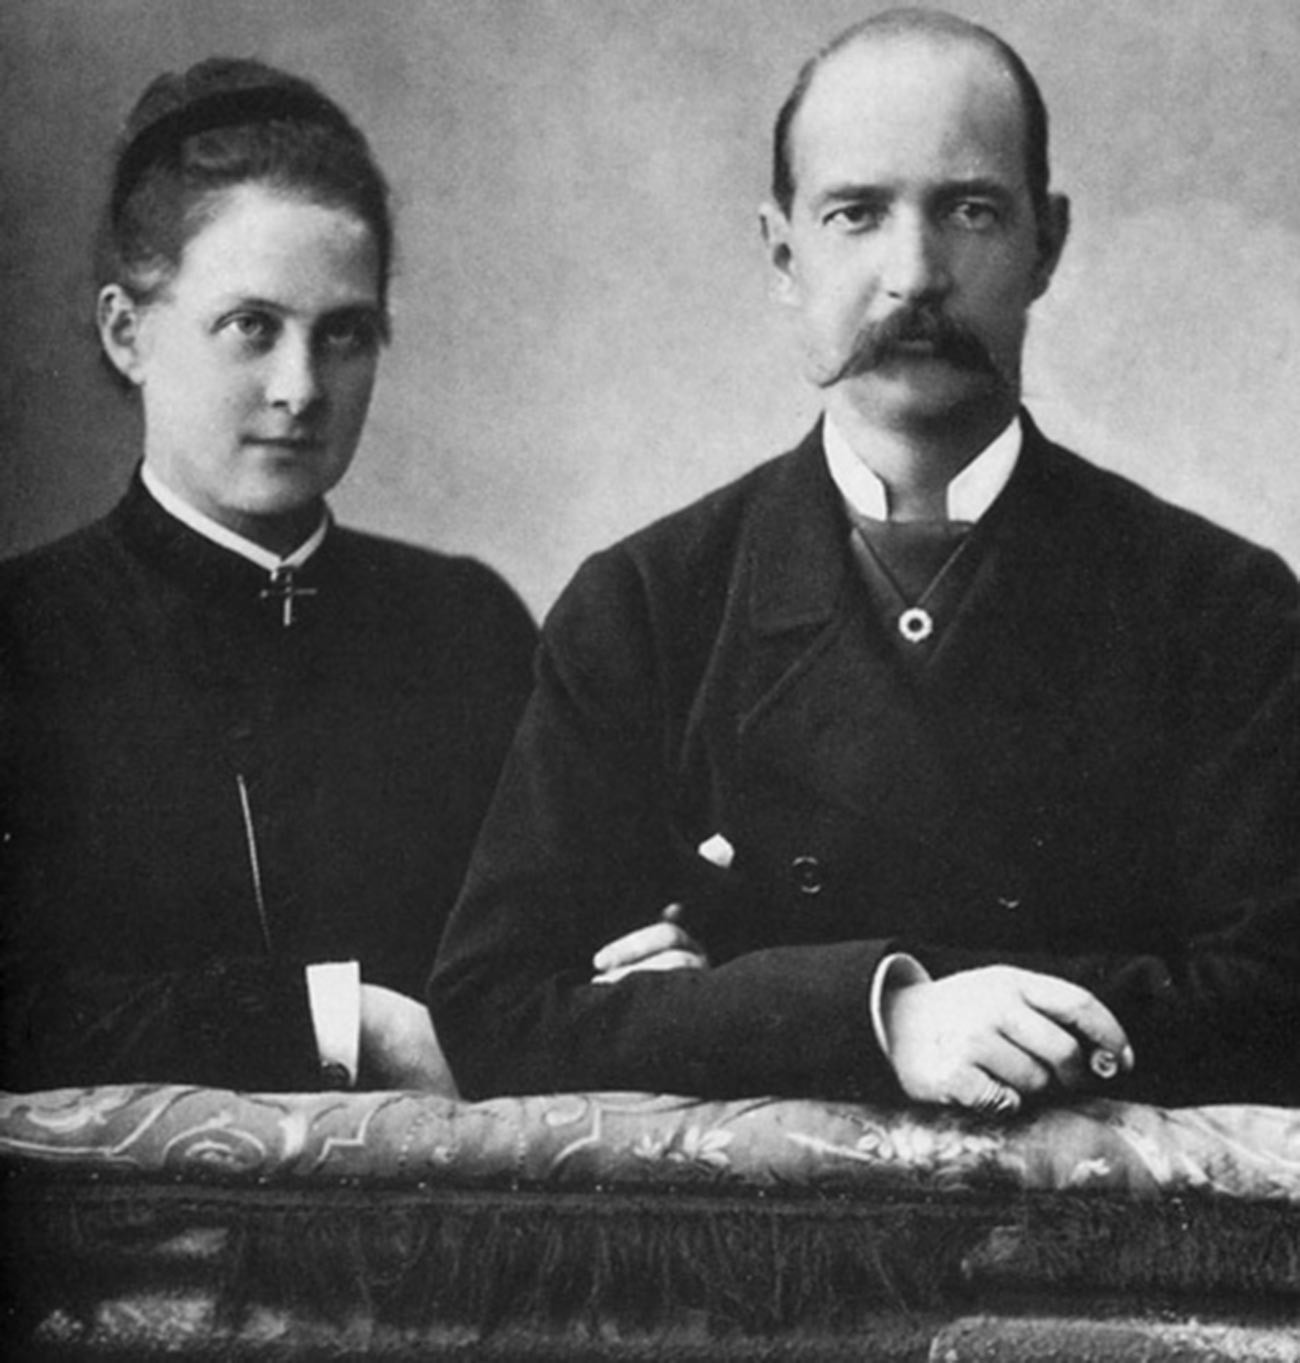 George I of Greece (R) and his wife Olga Konstantinovna (L)